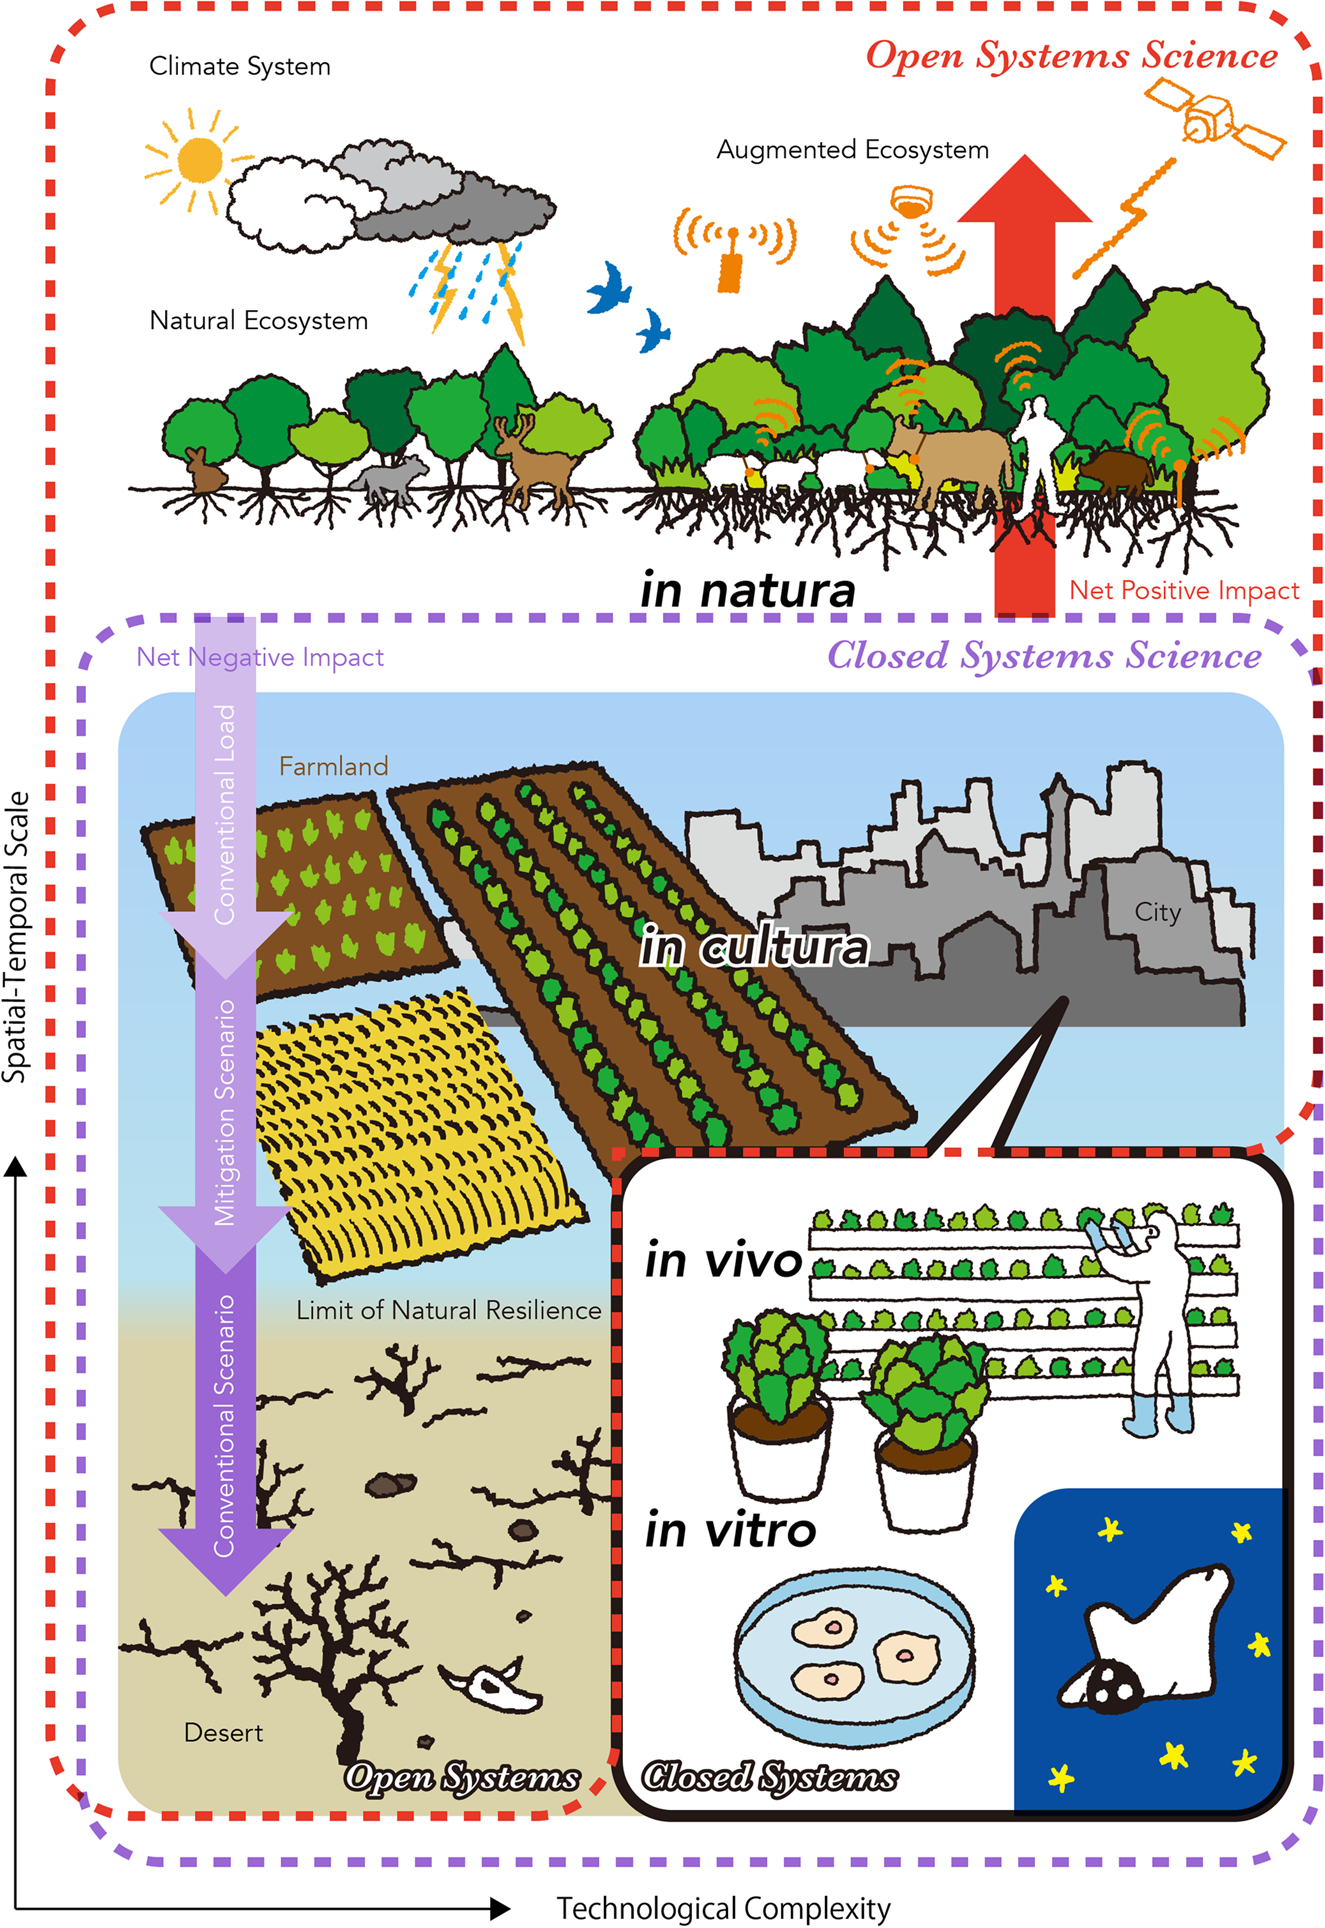 Human Augmentation Of Ecosystems Objectives For Food Production And Science By 2045 Npj Science Of Food